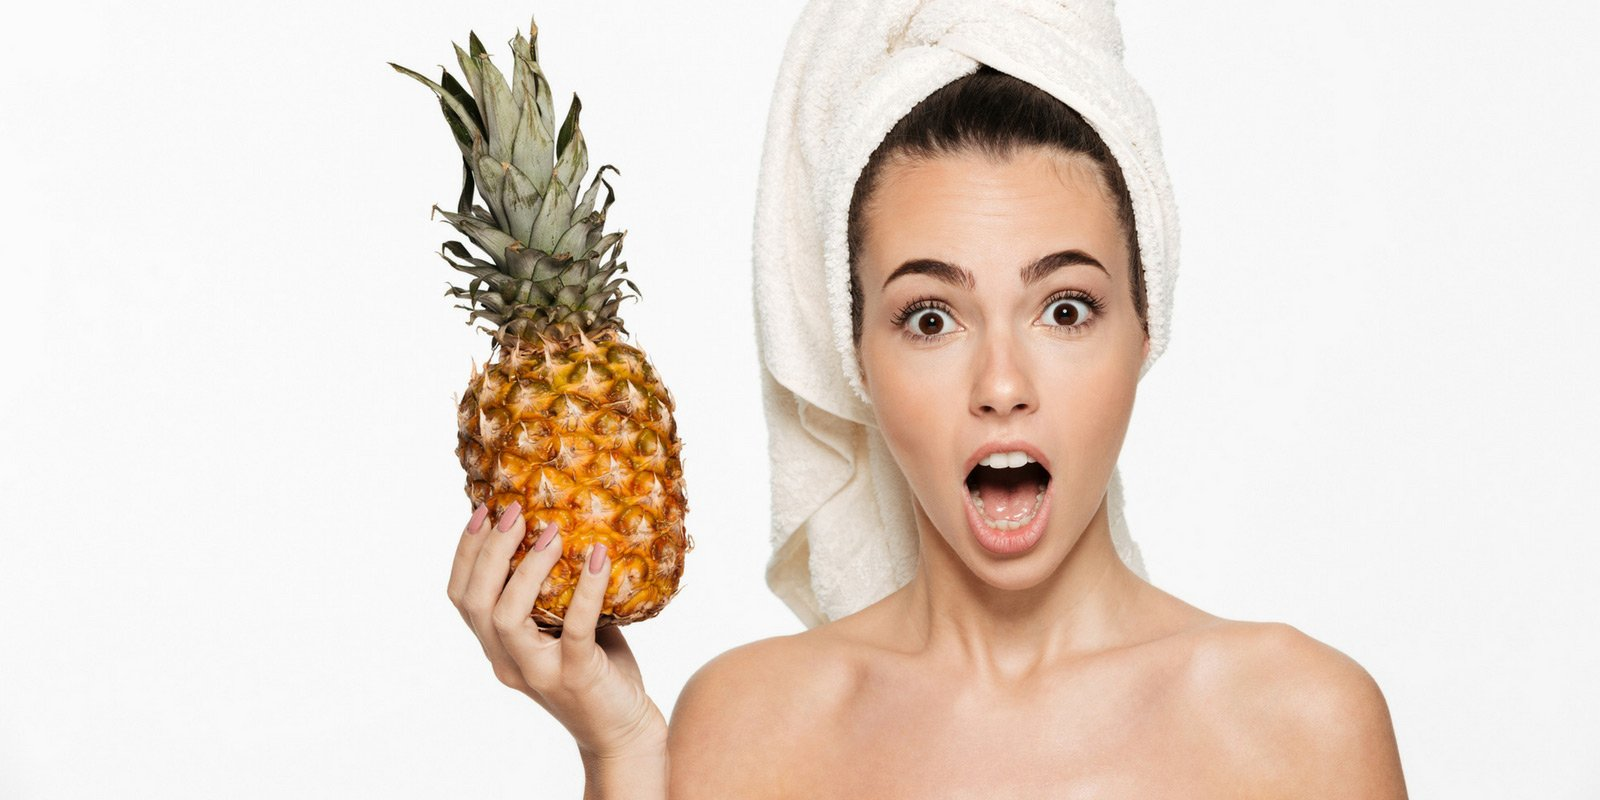 7 Surprising Beauty Benefits of Pineapple